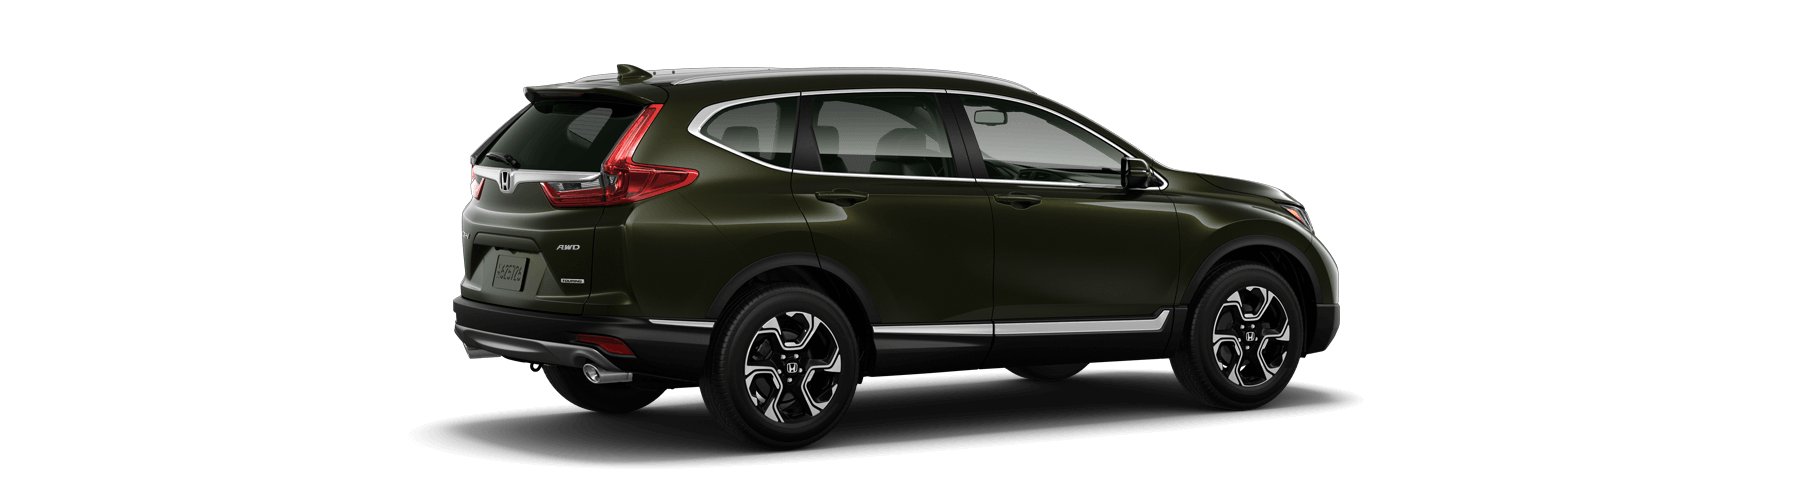 2019 Honda CR-V Rear Angle